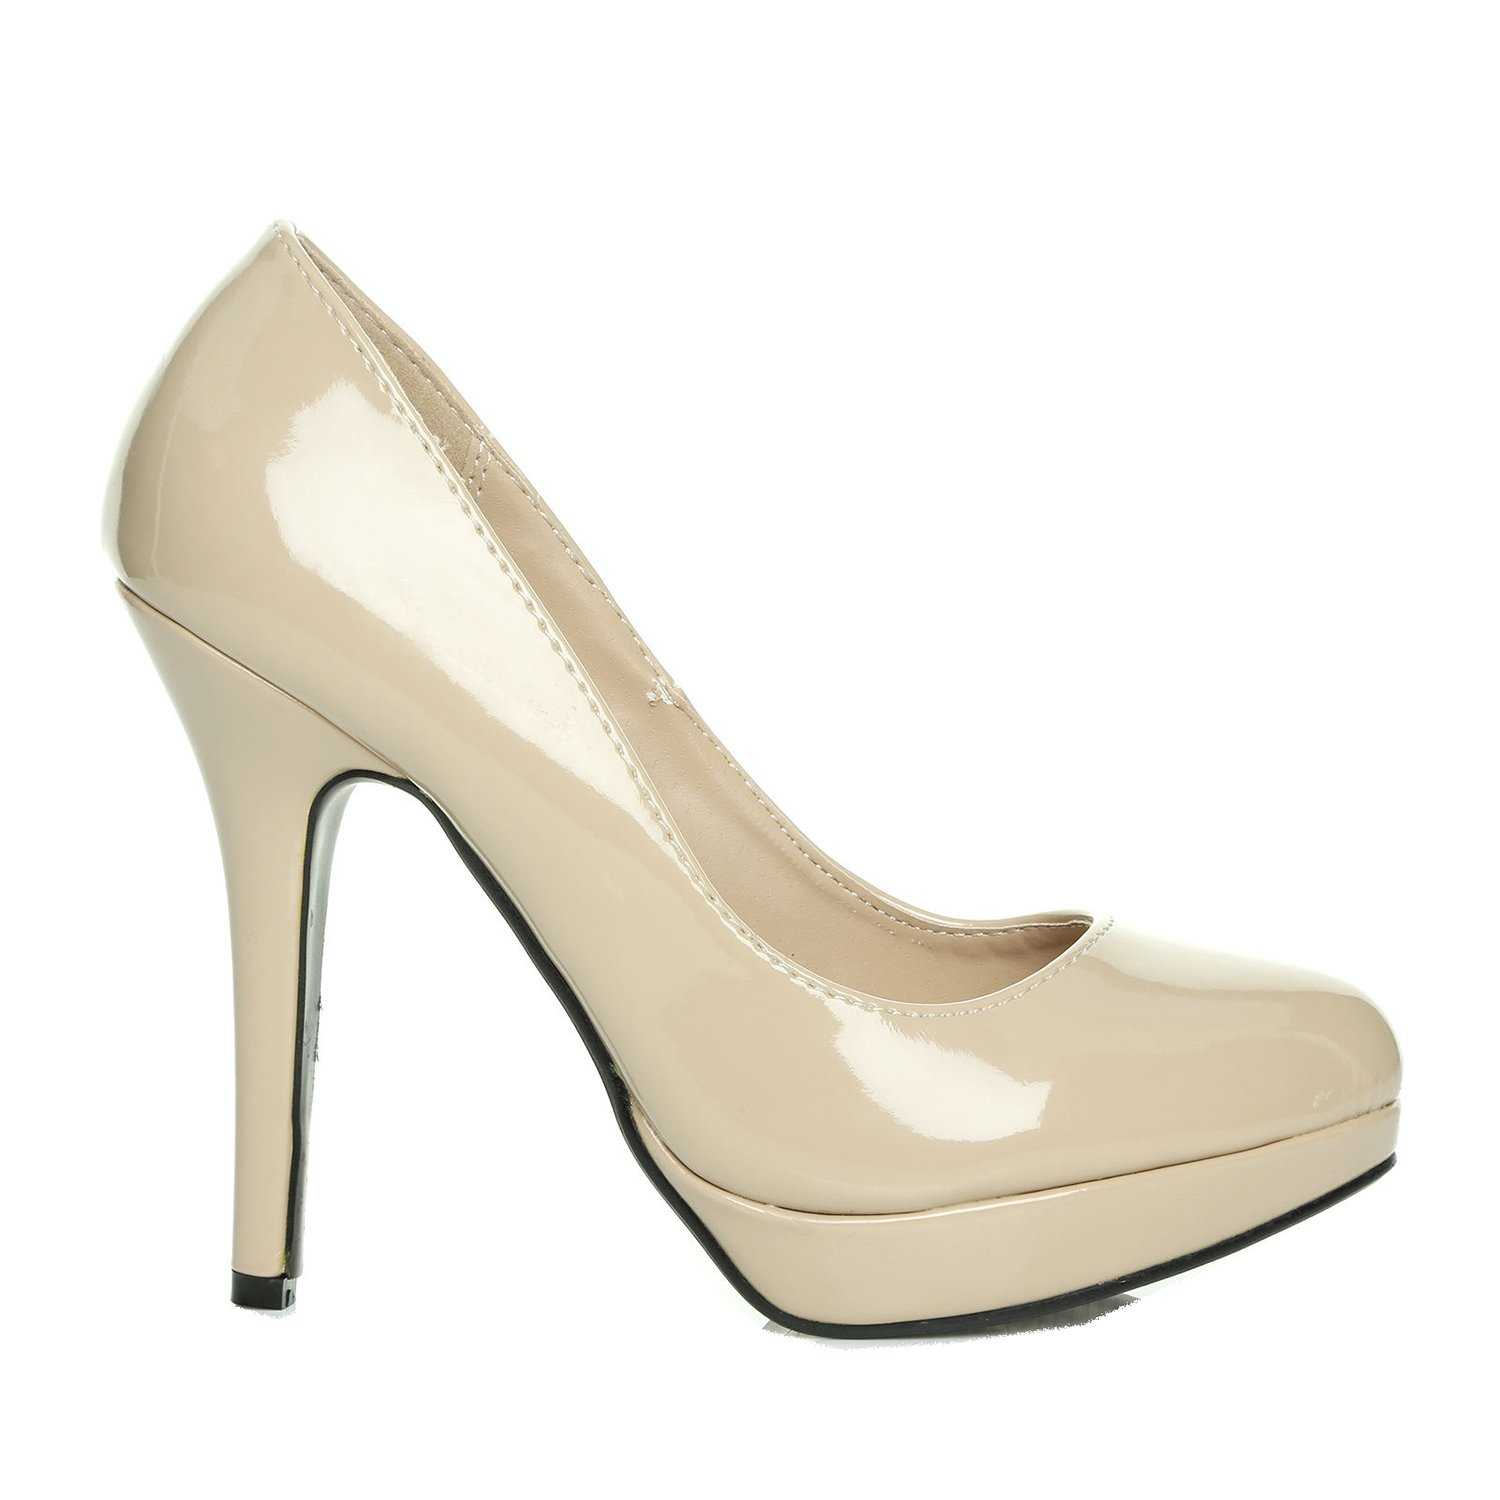 Moltiplicazione Noce delicato  LADIES/HIGH HEEL PLATFORM SHOES IN SIZE- 3/36 - 8/41 WOMENS COURT SHOE HEELS  NEW: Amazon.co.uk: Shoes & Bags